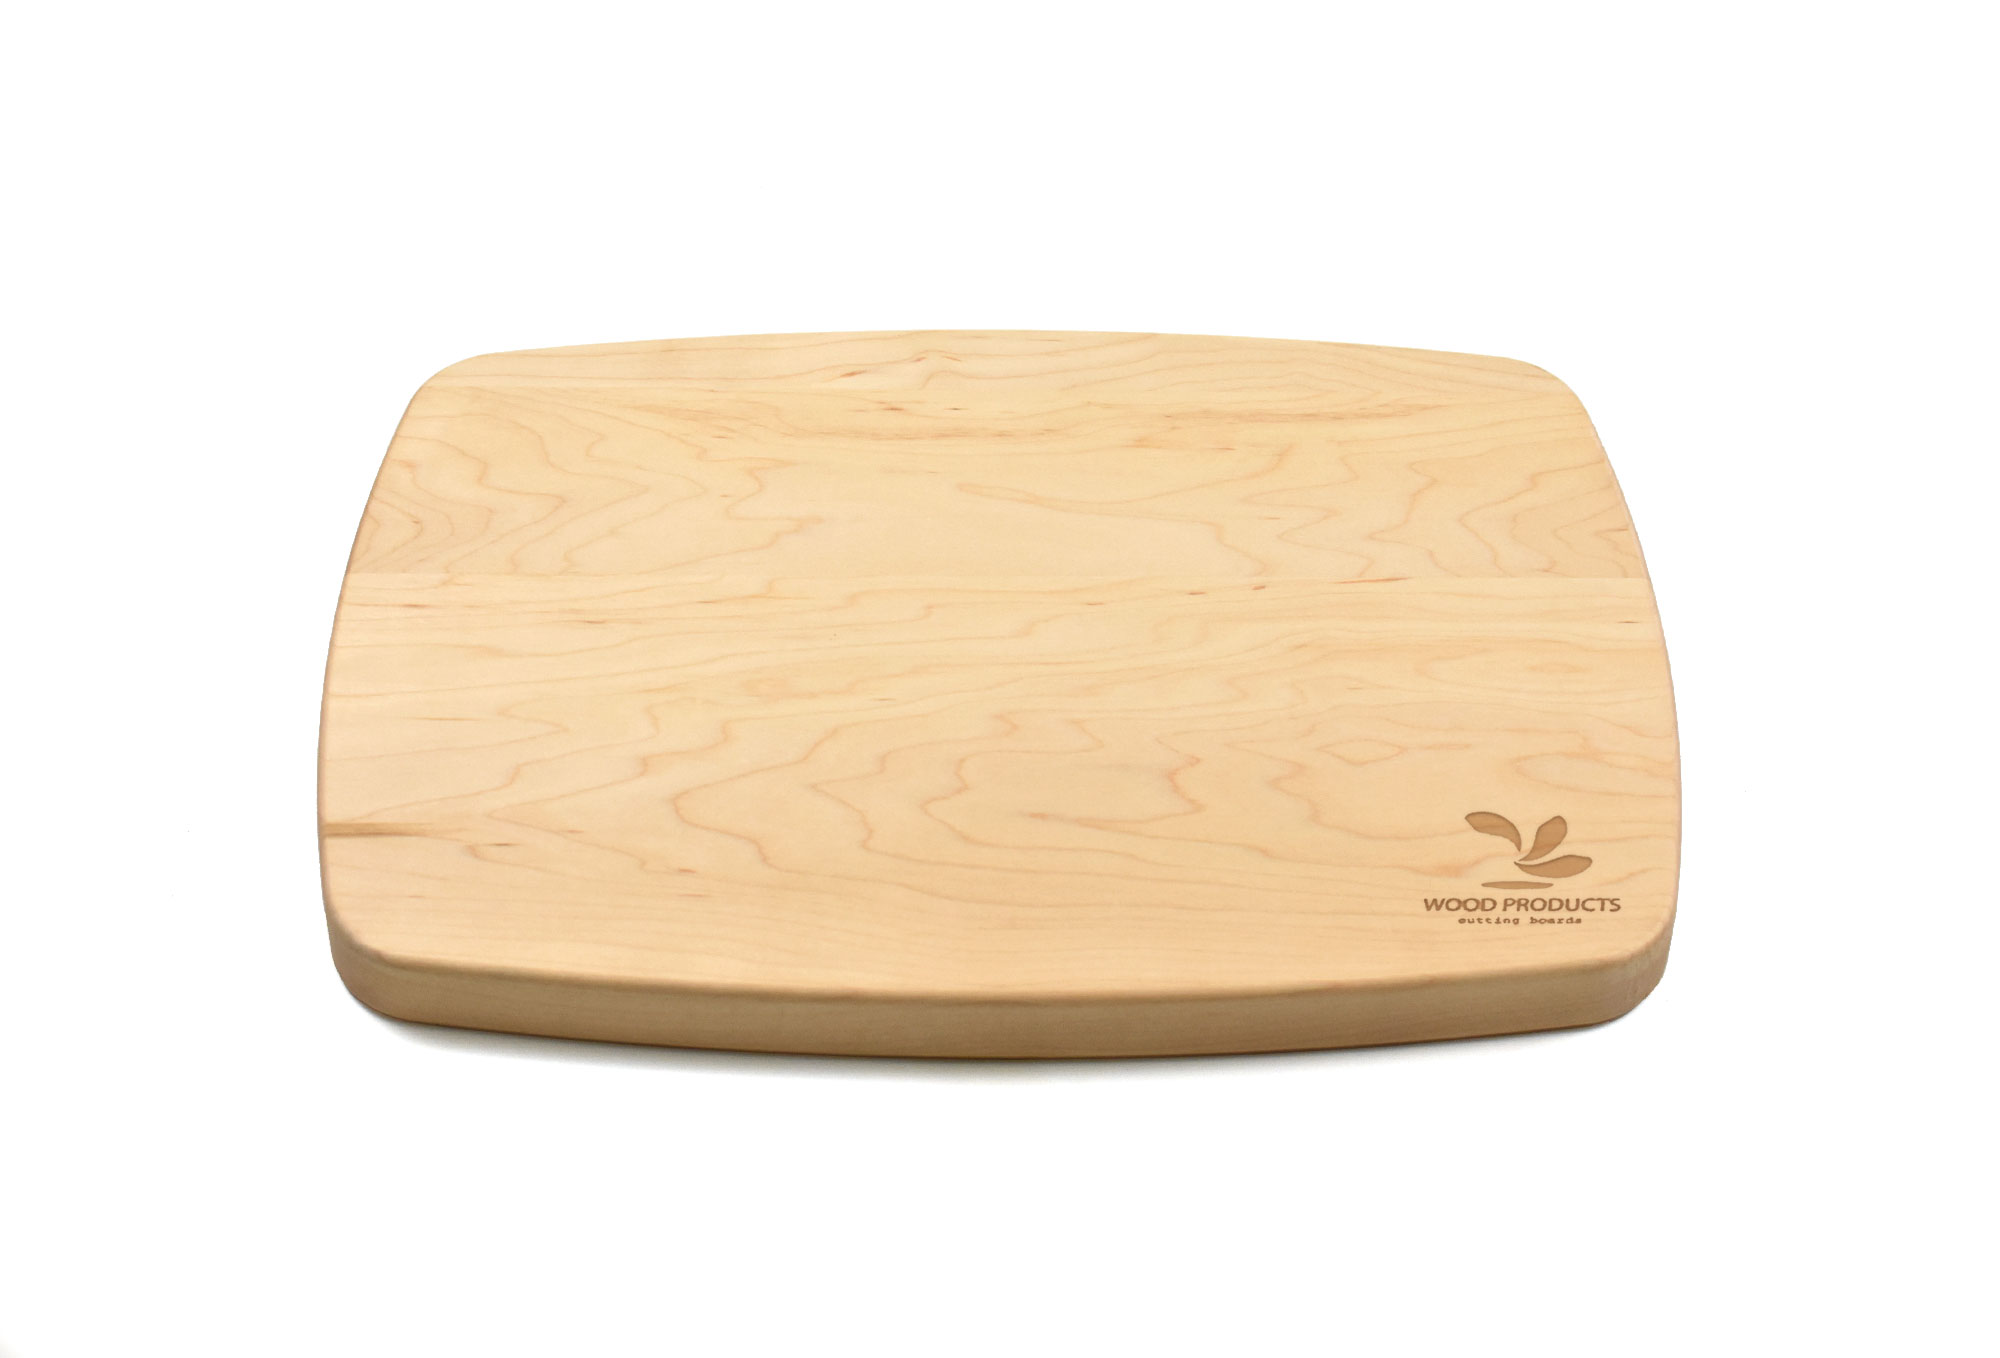 Maple rectangular curved cutting board with rounded corners Engraved